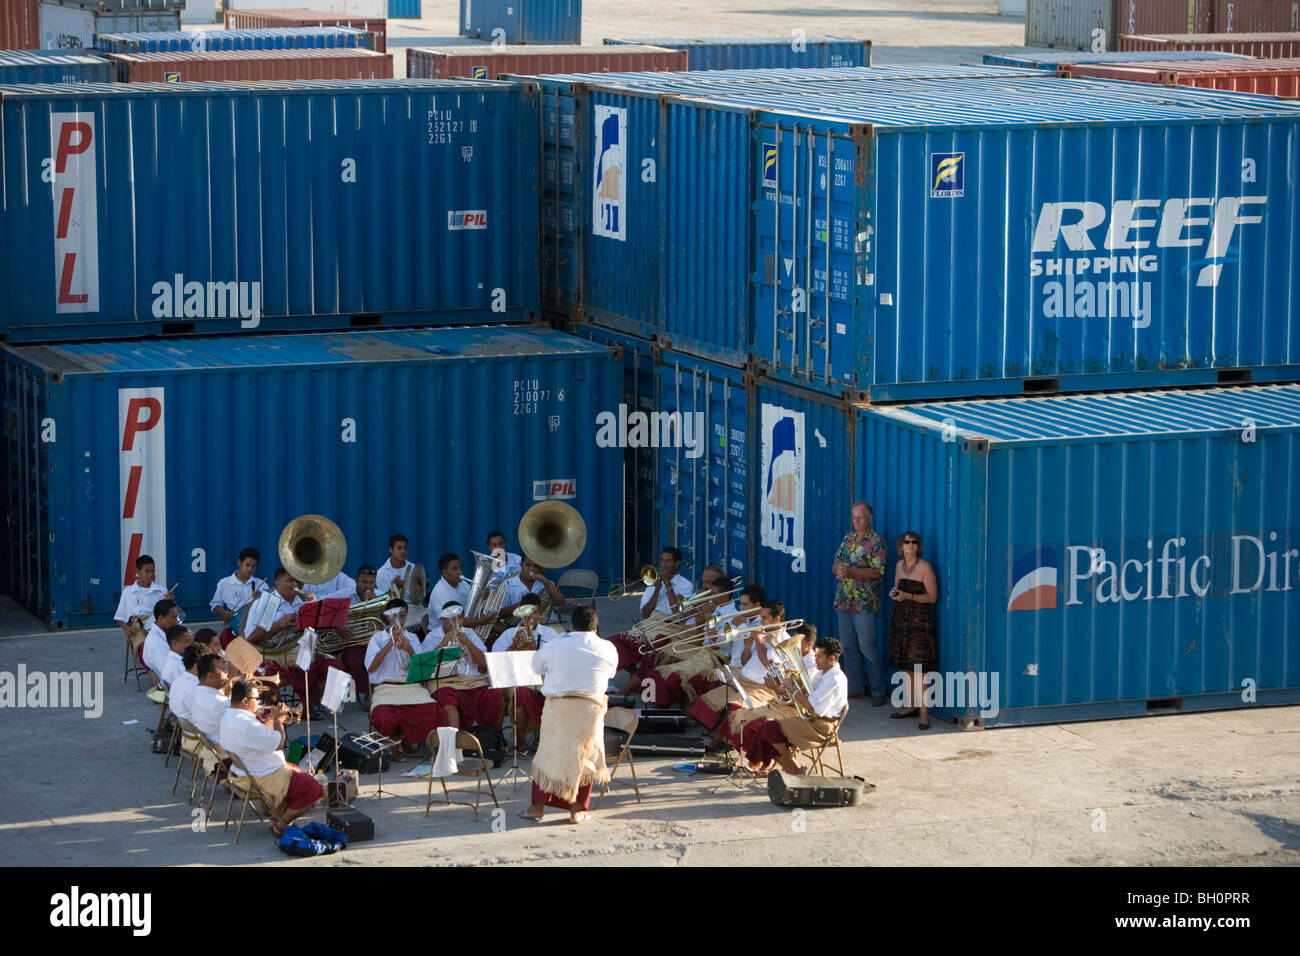 Tongan Brass Band playing amidst containers at harbour, Nuku'alofa, Tongatapu, Tonga, South Pacific, Oceania Stock Photo